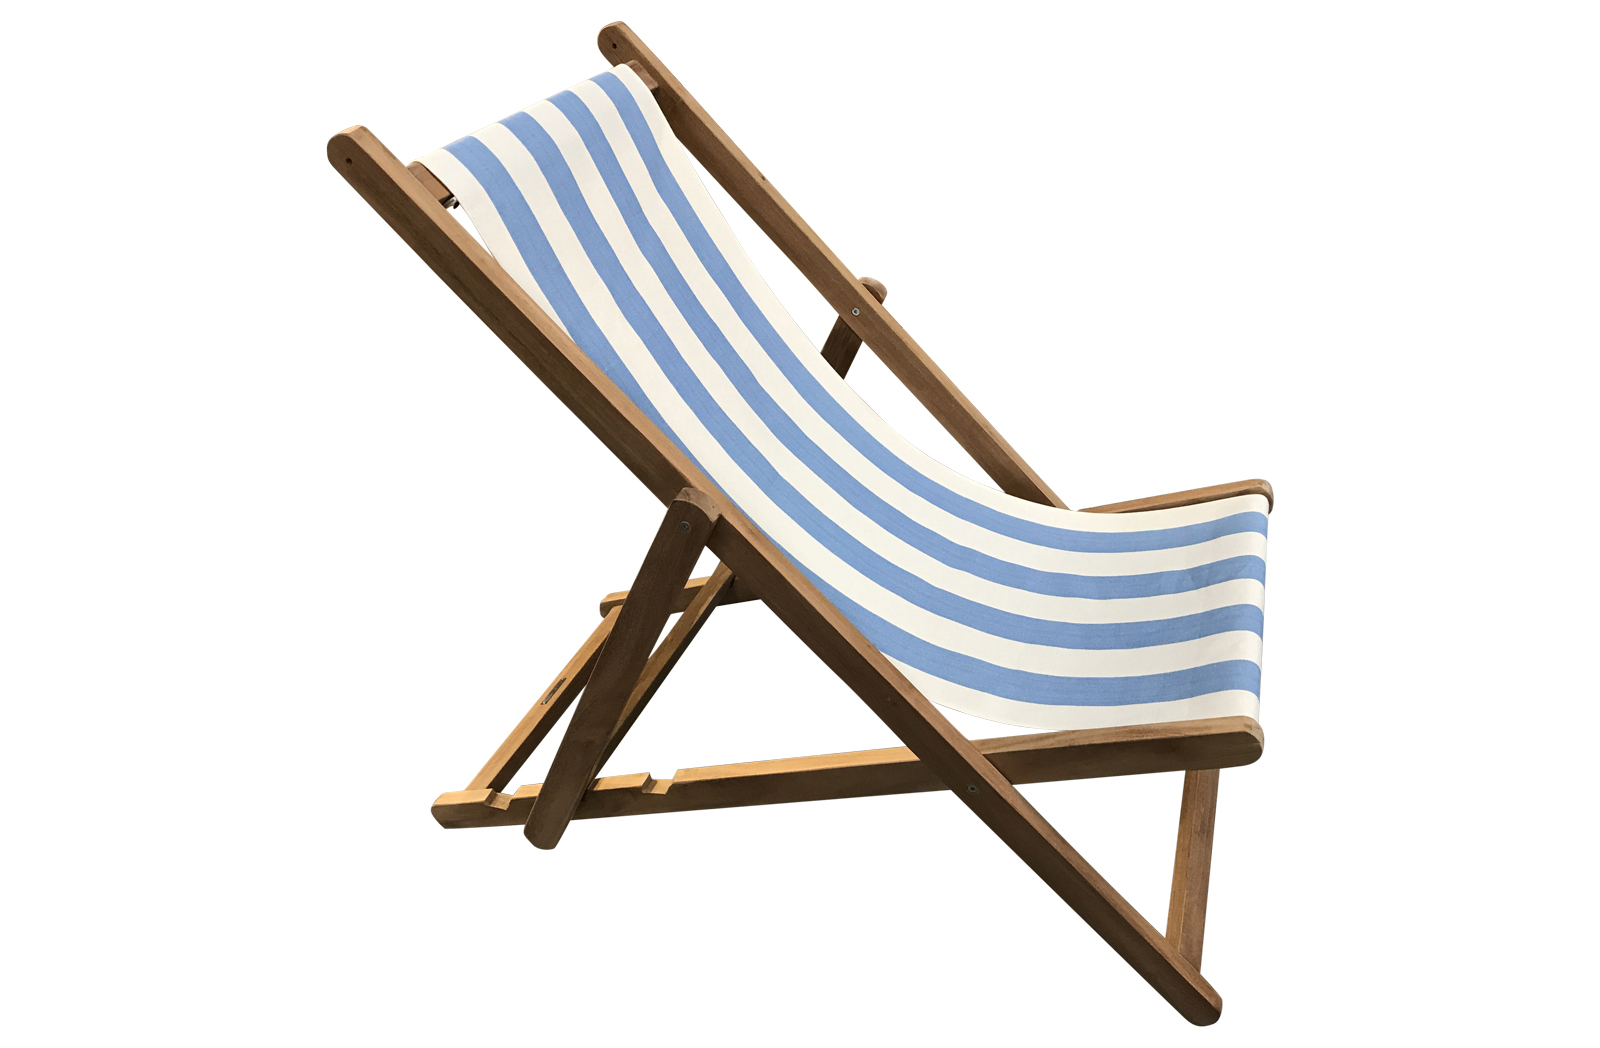 Sky blue and white Deckchair | Buy Folding Wooden Deck Chairs